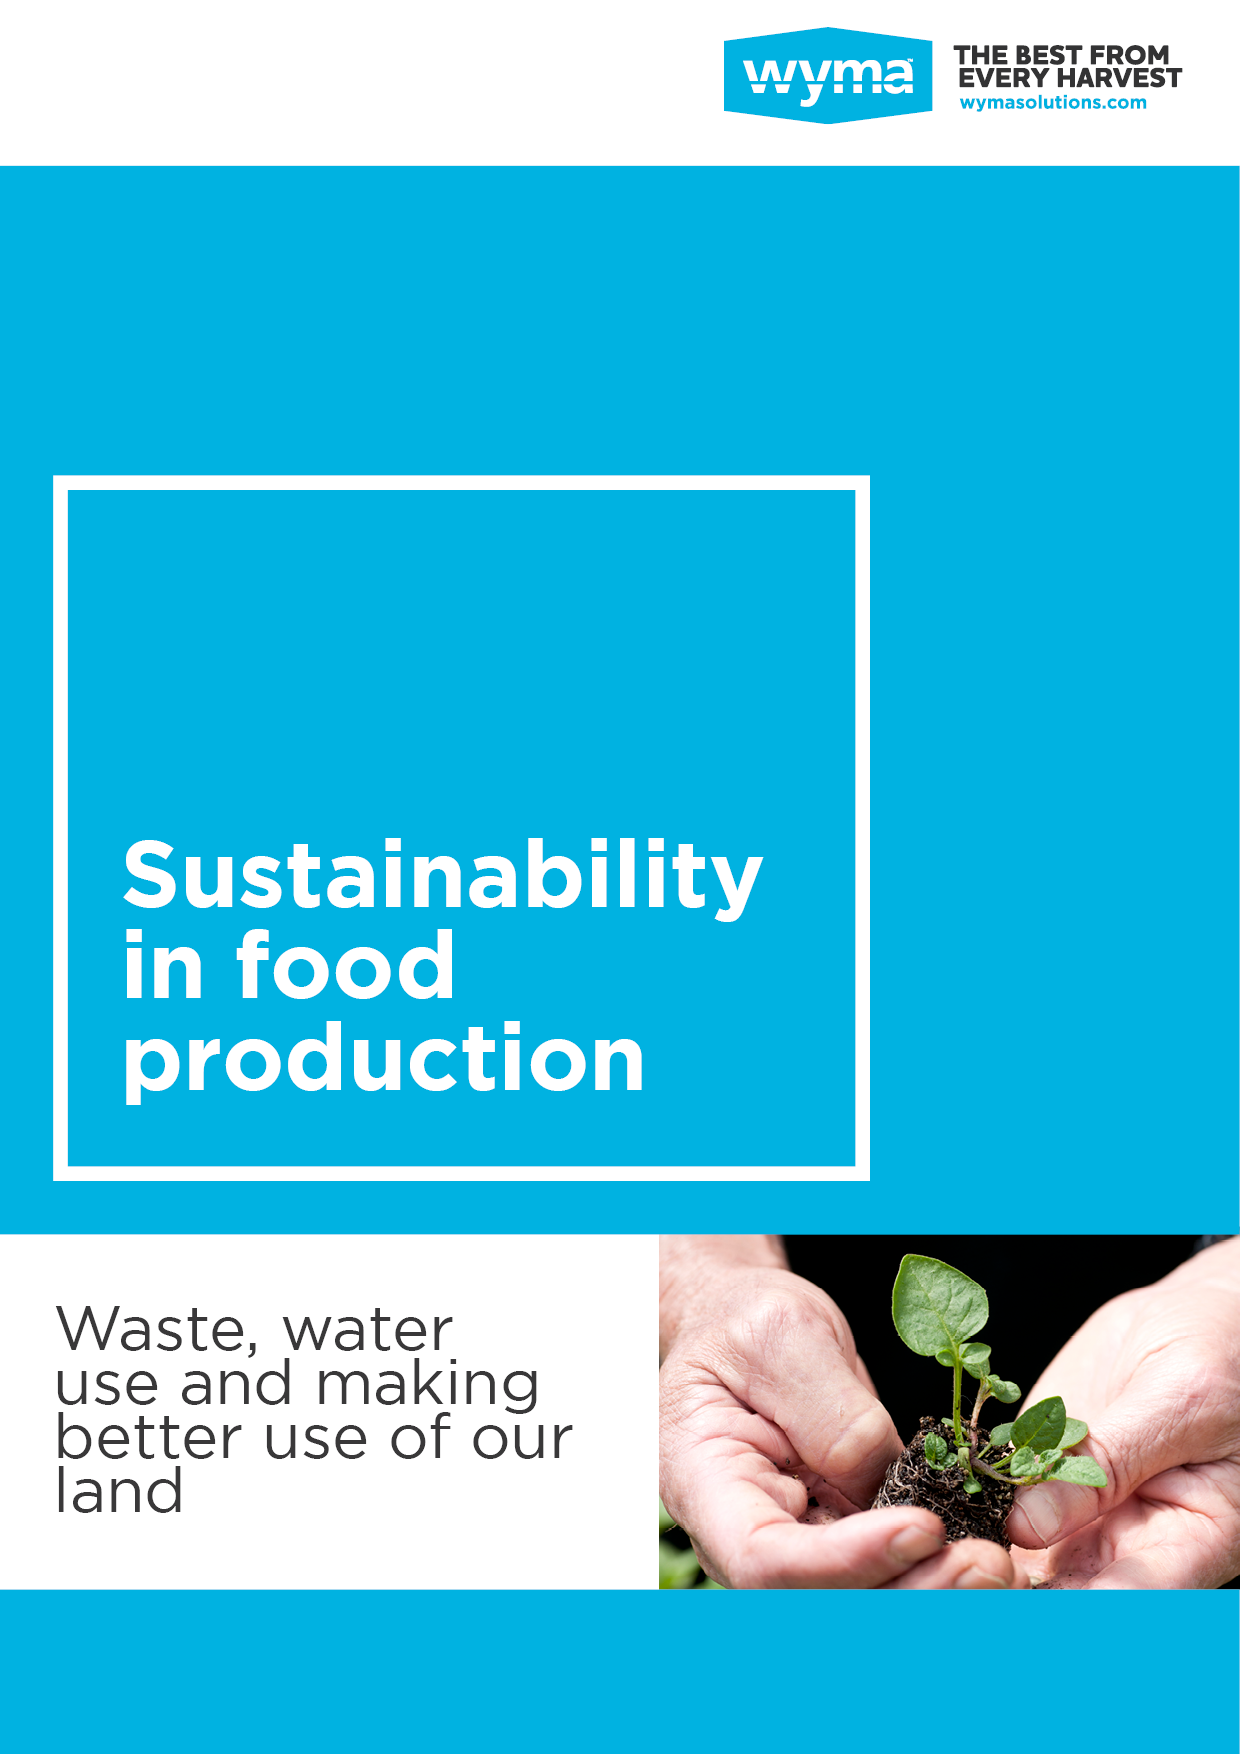 Sustainability in food production